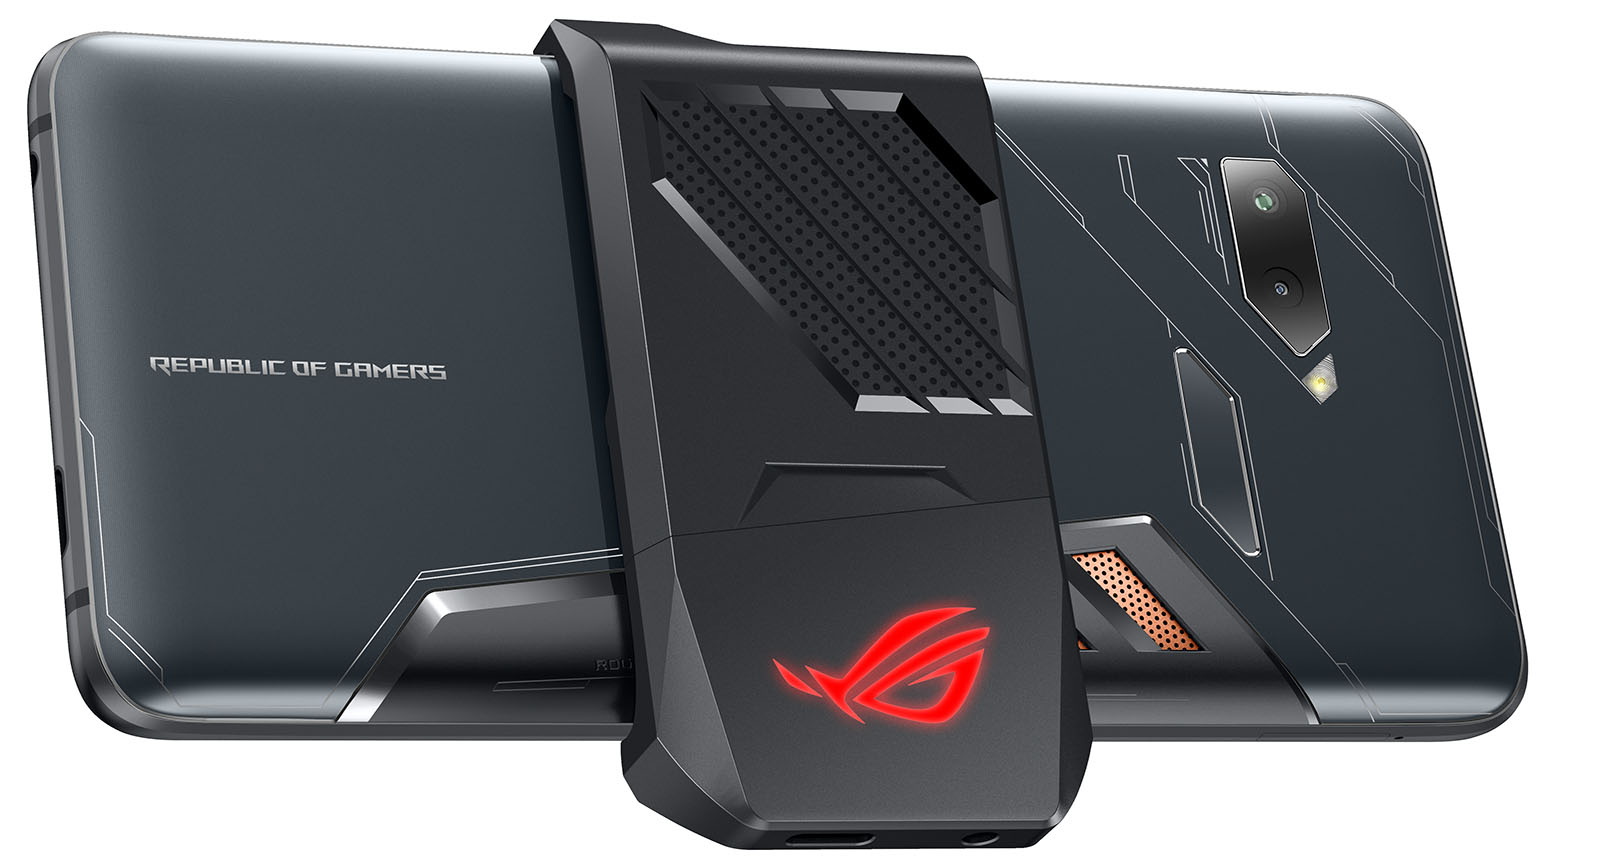 Image Result For Rog Gaming Phone Amazon